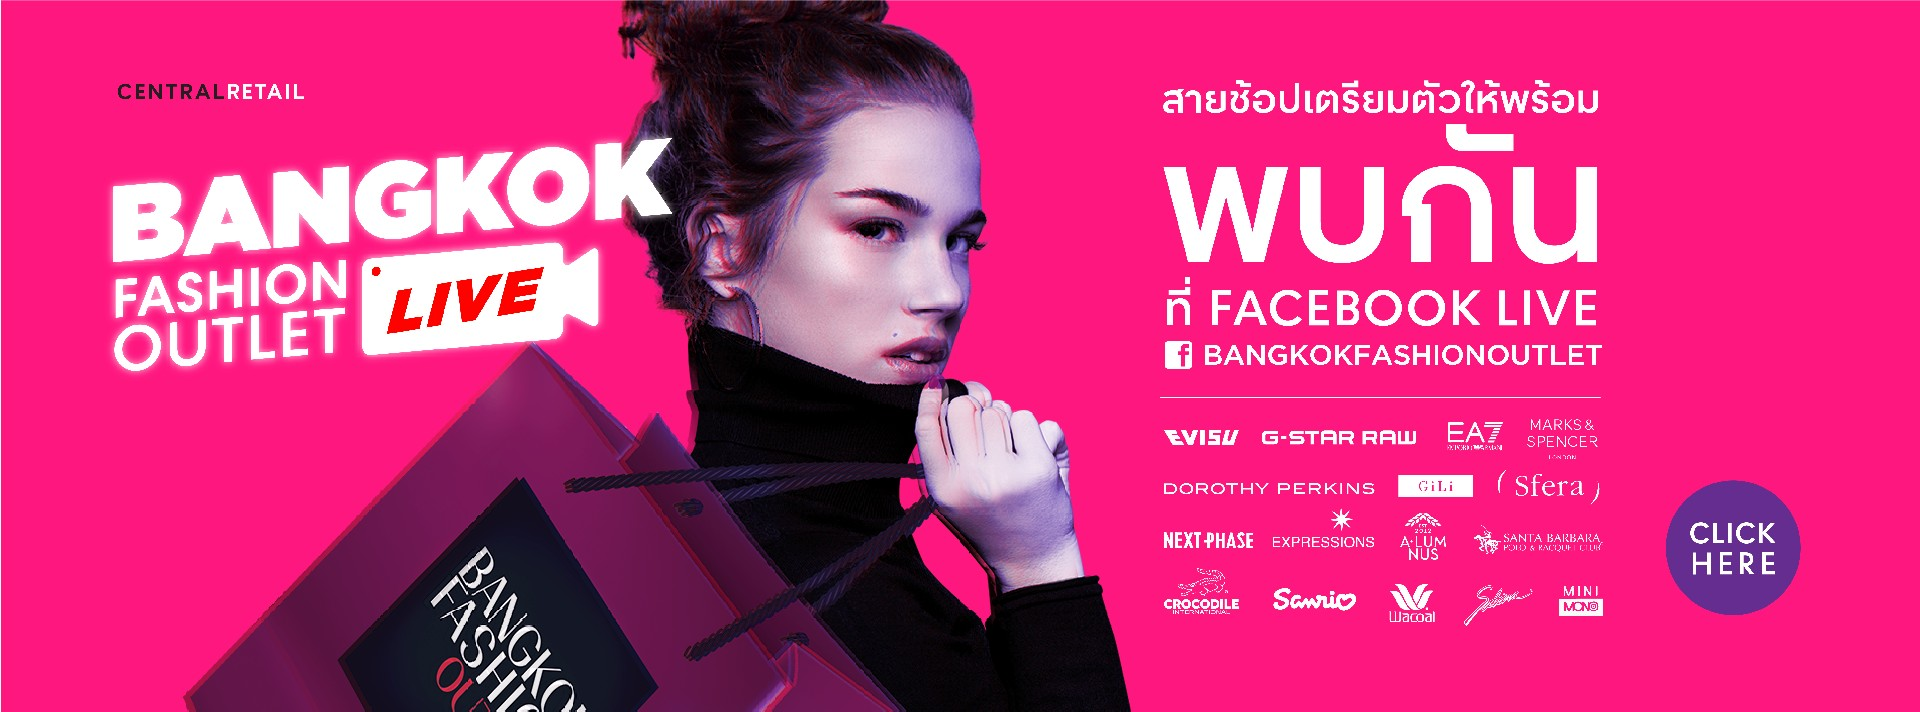 Bangkok Fashion Outlet Live